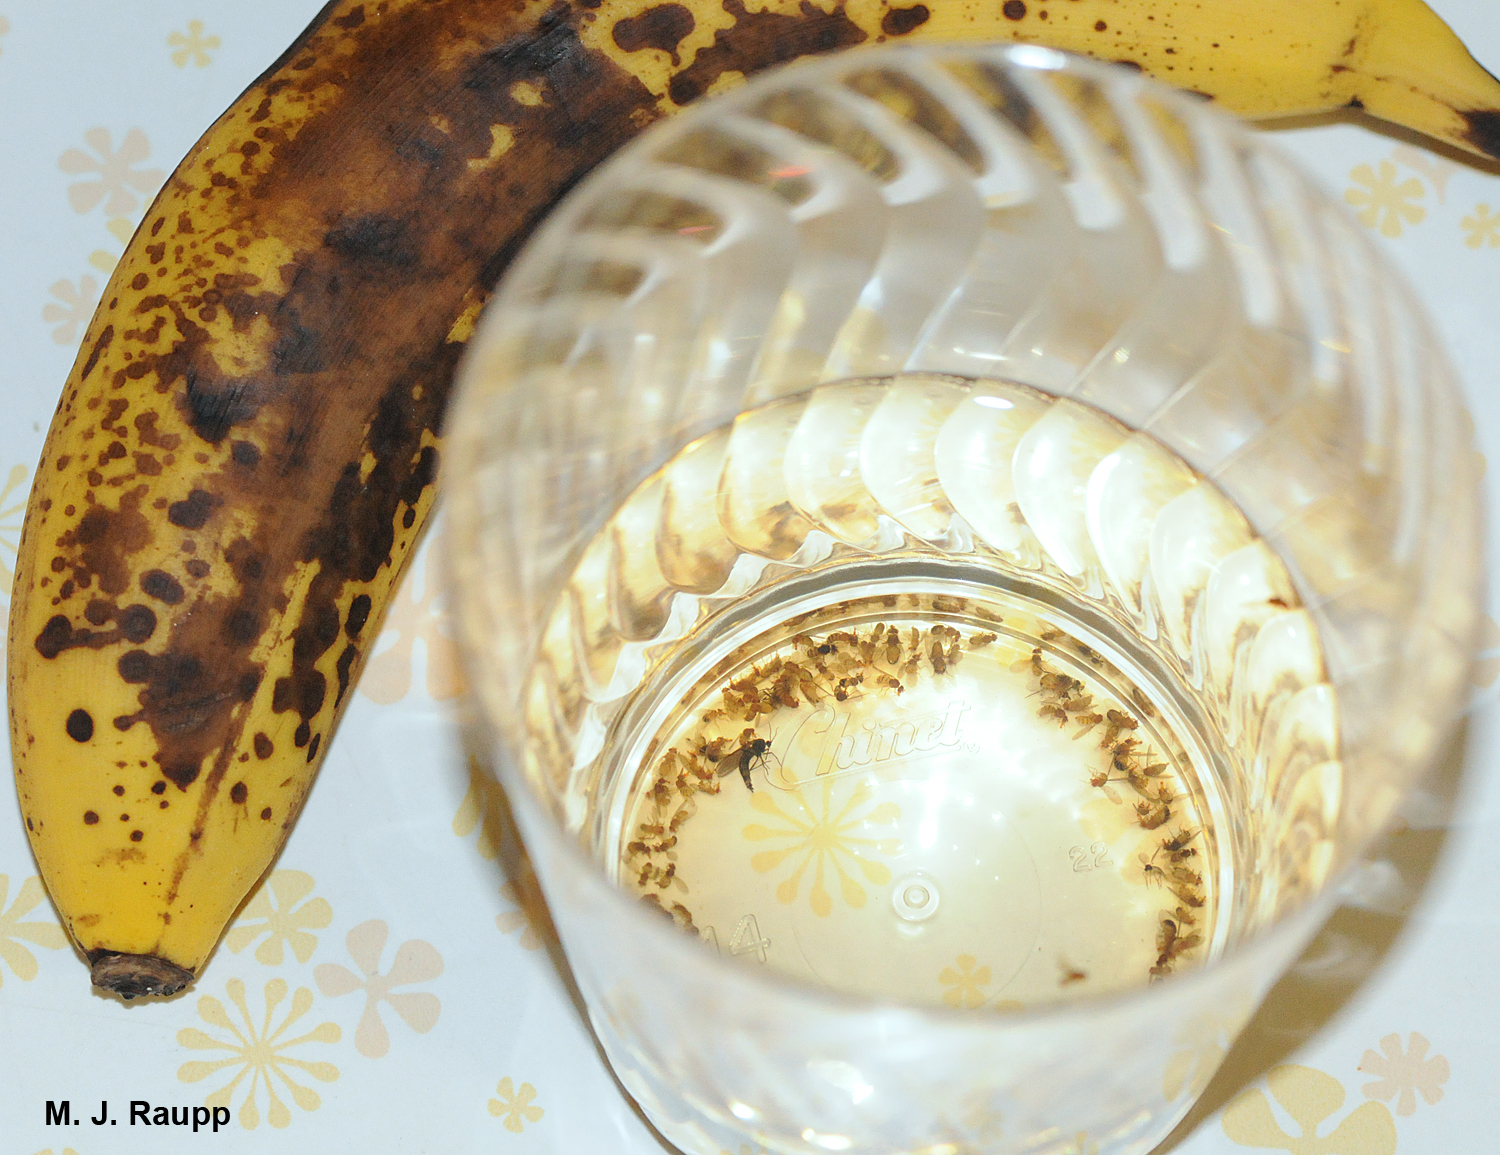 Yeasty odors of fermenting fruit and wine vinegar lure fruit flies to their death.